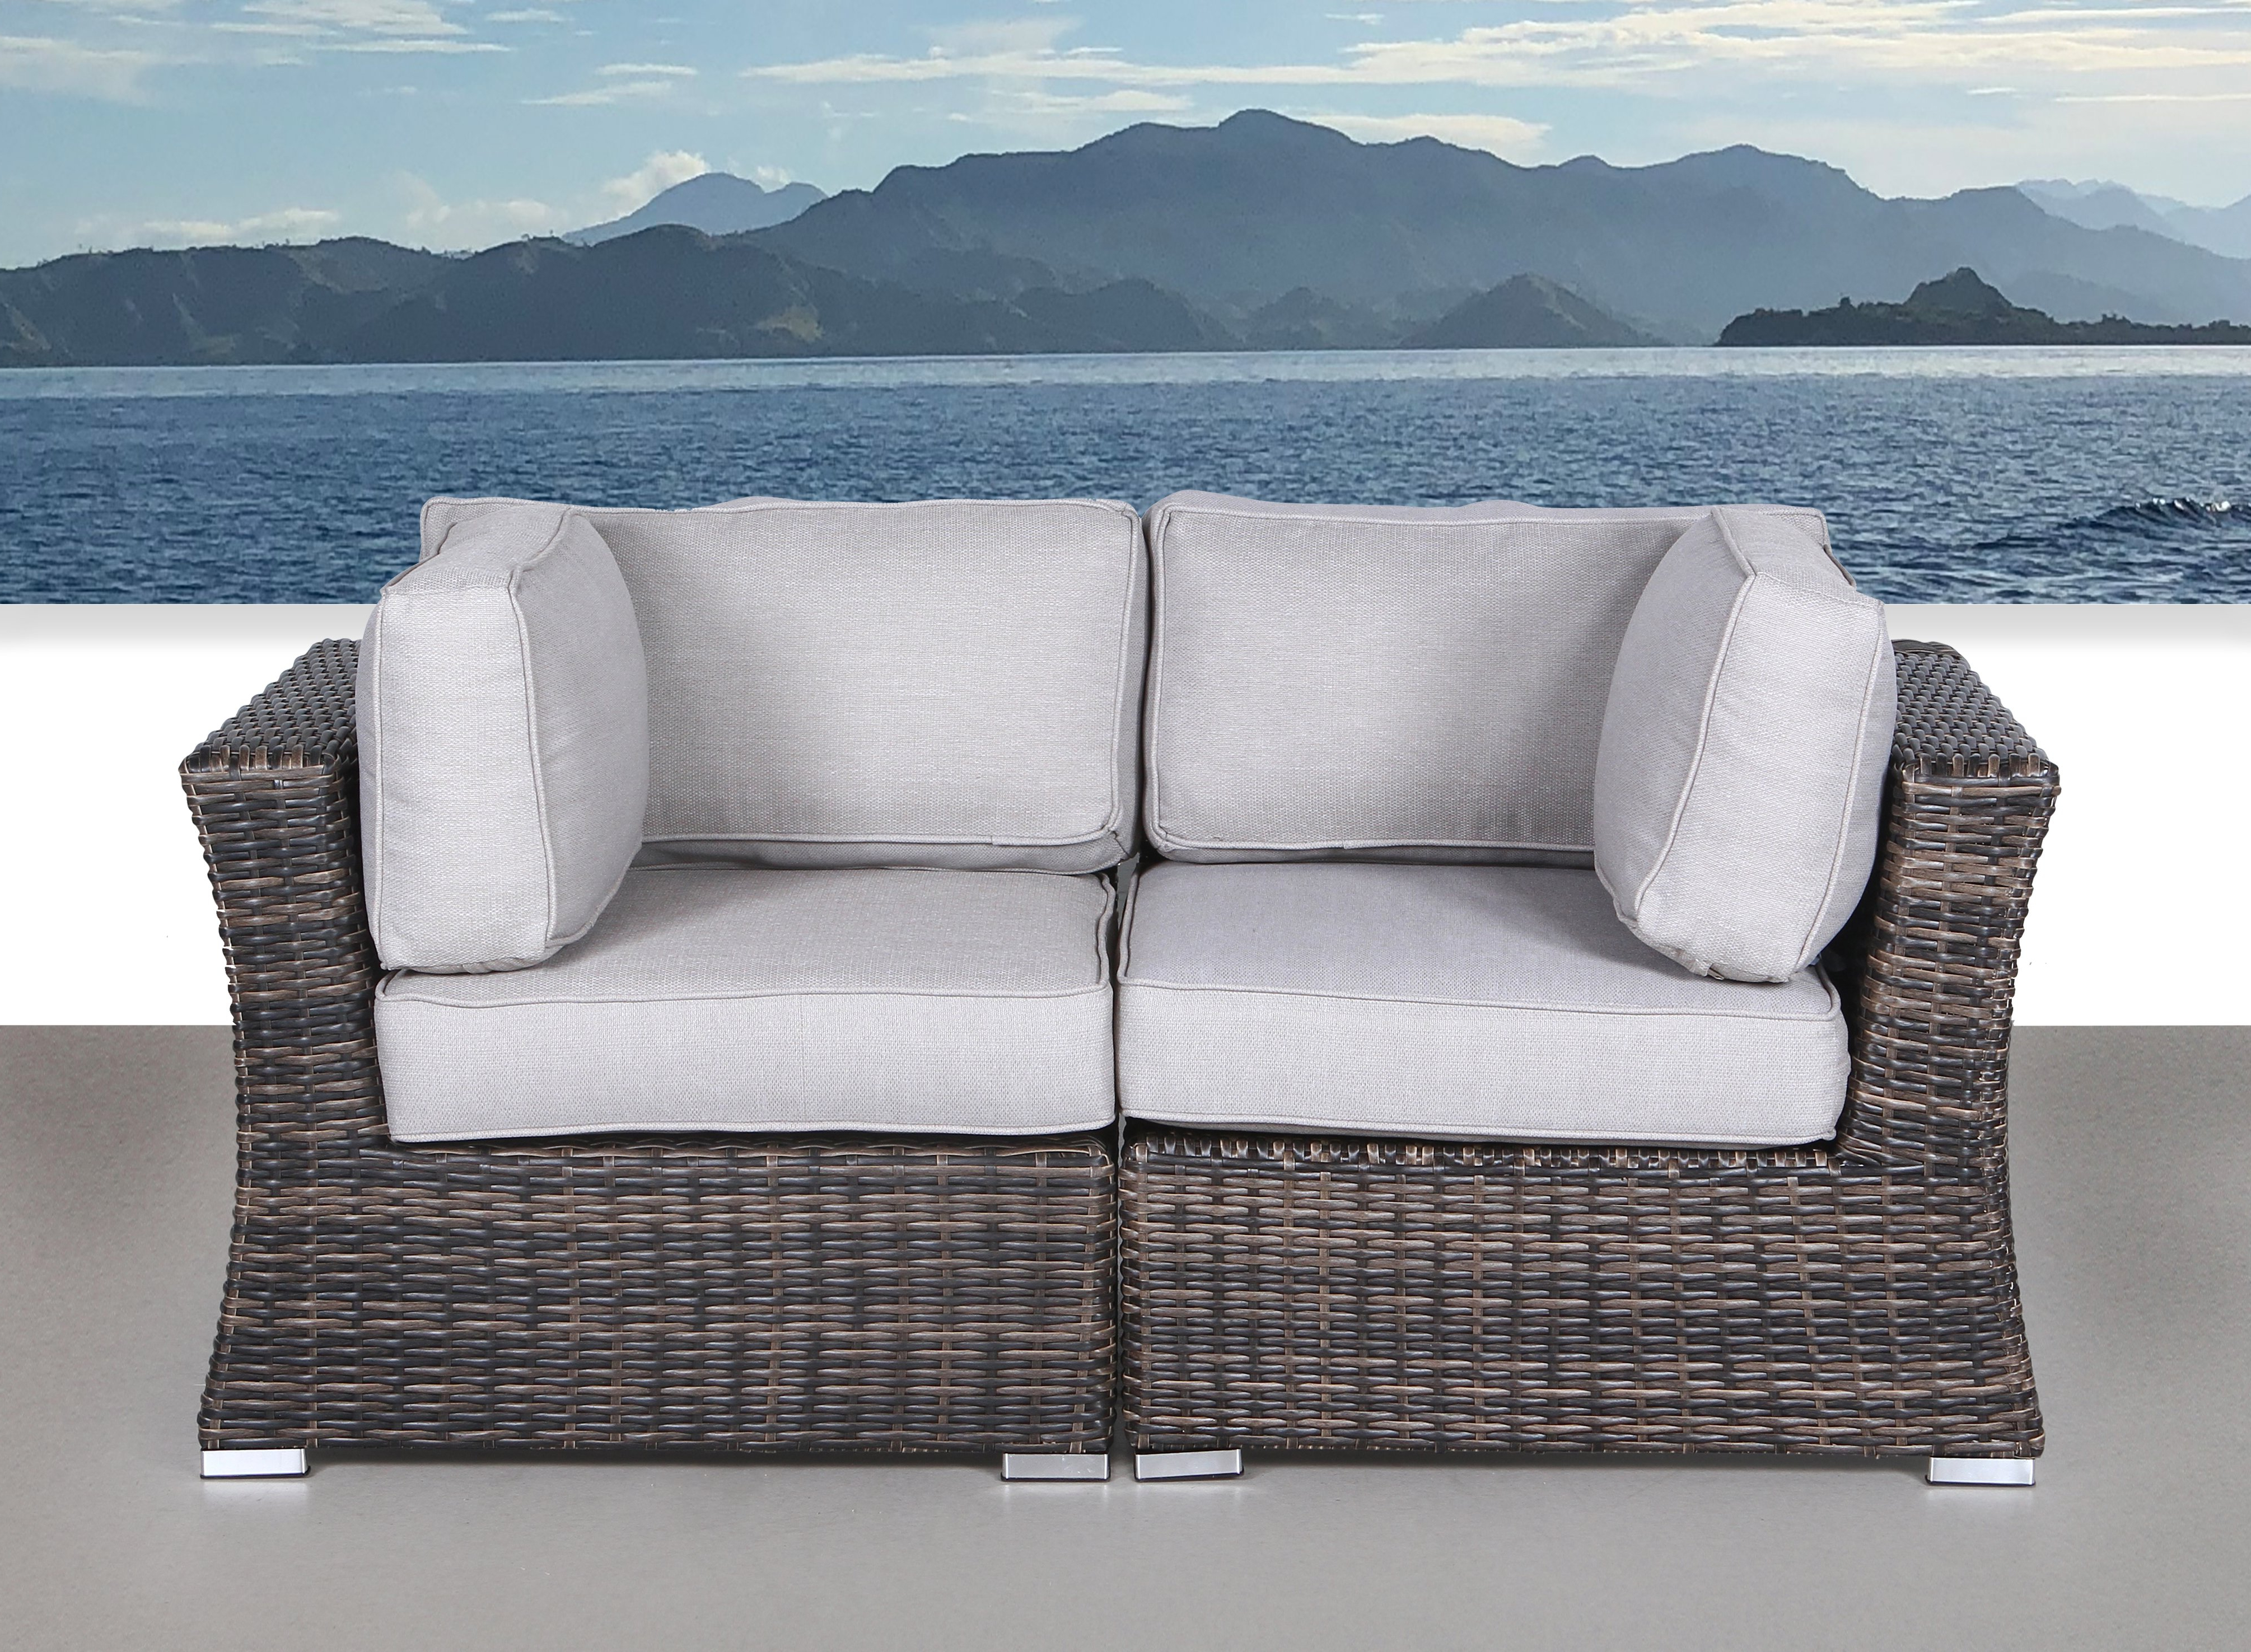 Popular Tripp Loveseats With Cushions With Regard To Huddleson Contemporary Loveseat With Cushion (View 13 of 20)